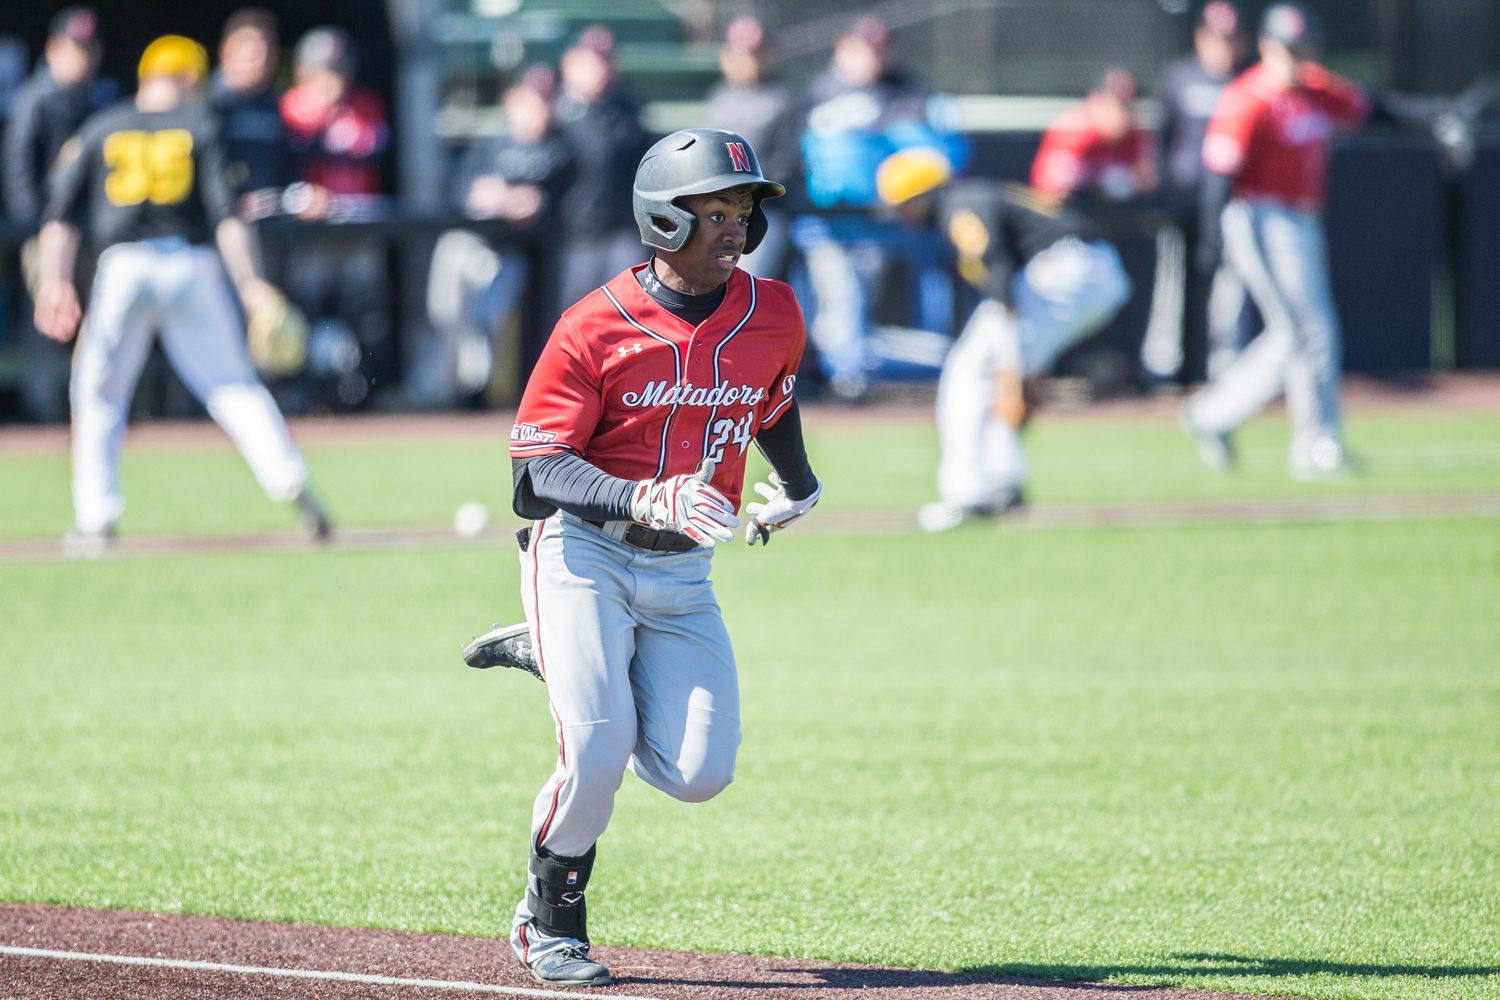 CSUN+outfielder+Robert+Bullard+sprints+to+first+during+the+first+game+of+a+baseball+doubleheader+between+Iowa+and+Cal-State+Northridge+at+Duane+Banks+Field+on+Sunday%2C+March+17%2C+2019.+The+Hawkeyes+defeated+the+Matadors%2C+5-4.